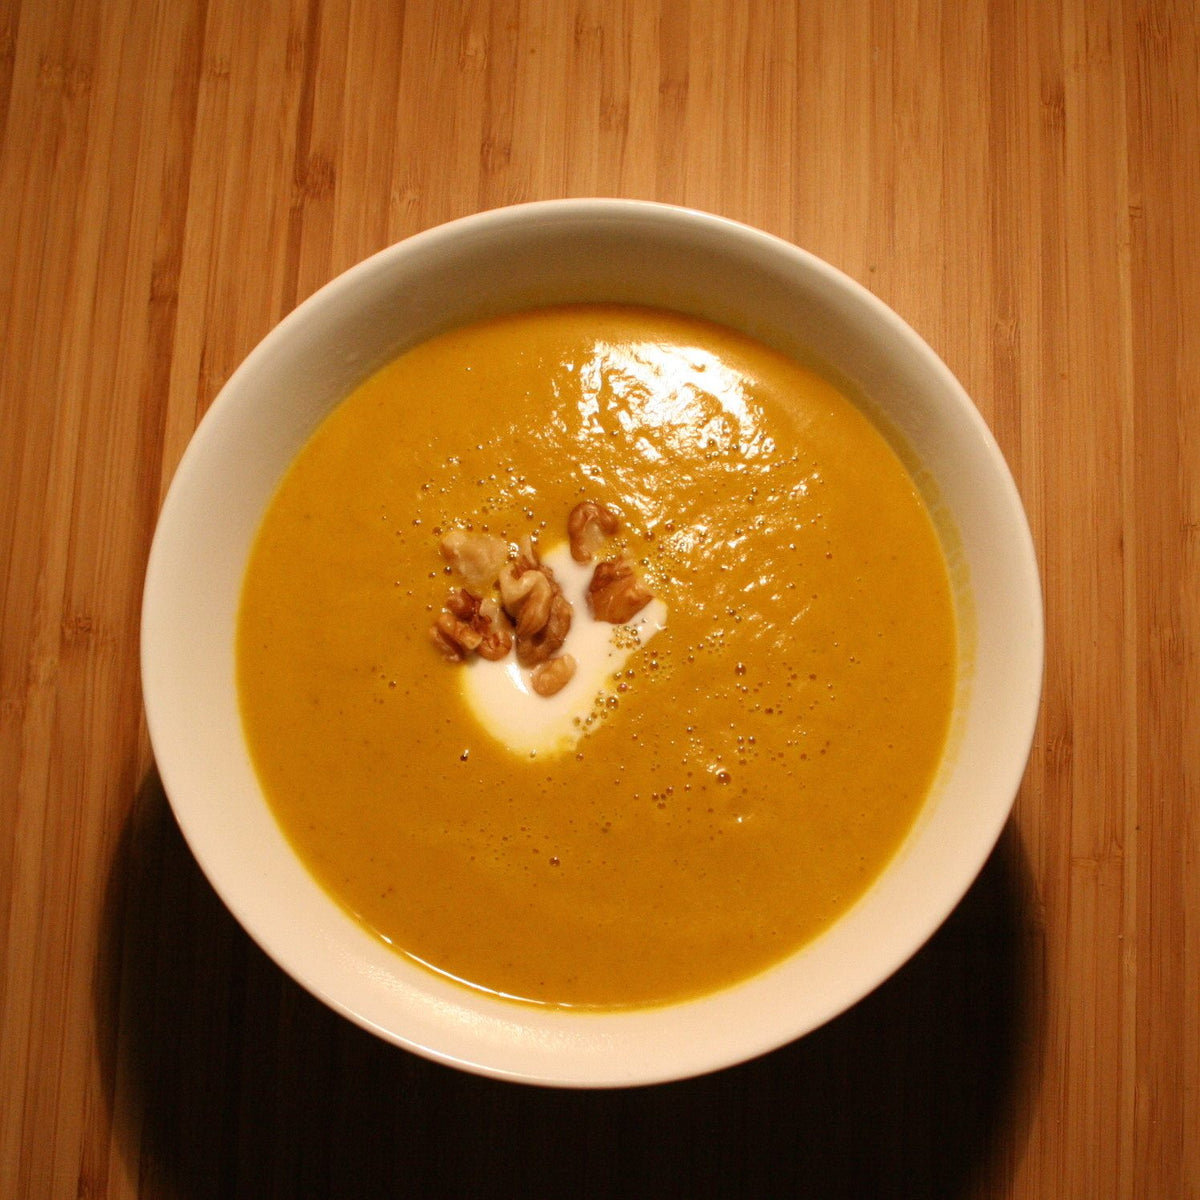 Saha Coconut Curried Butternut Squash Soup